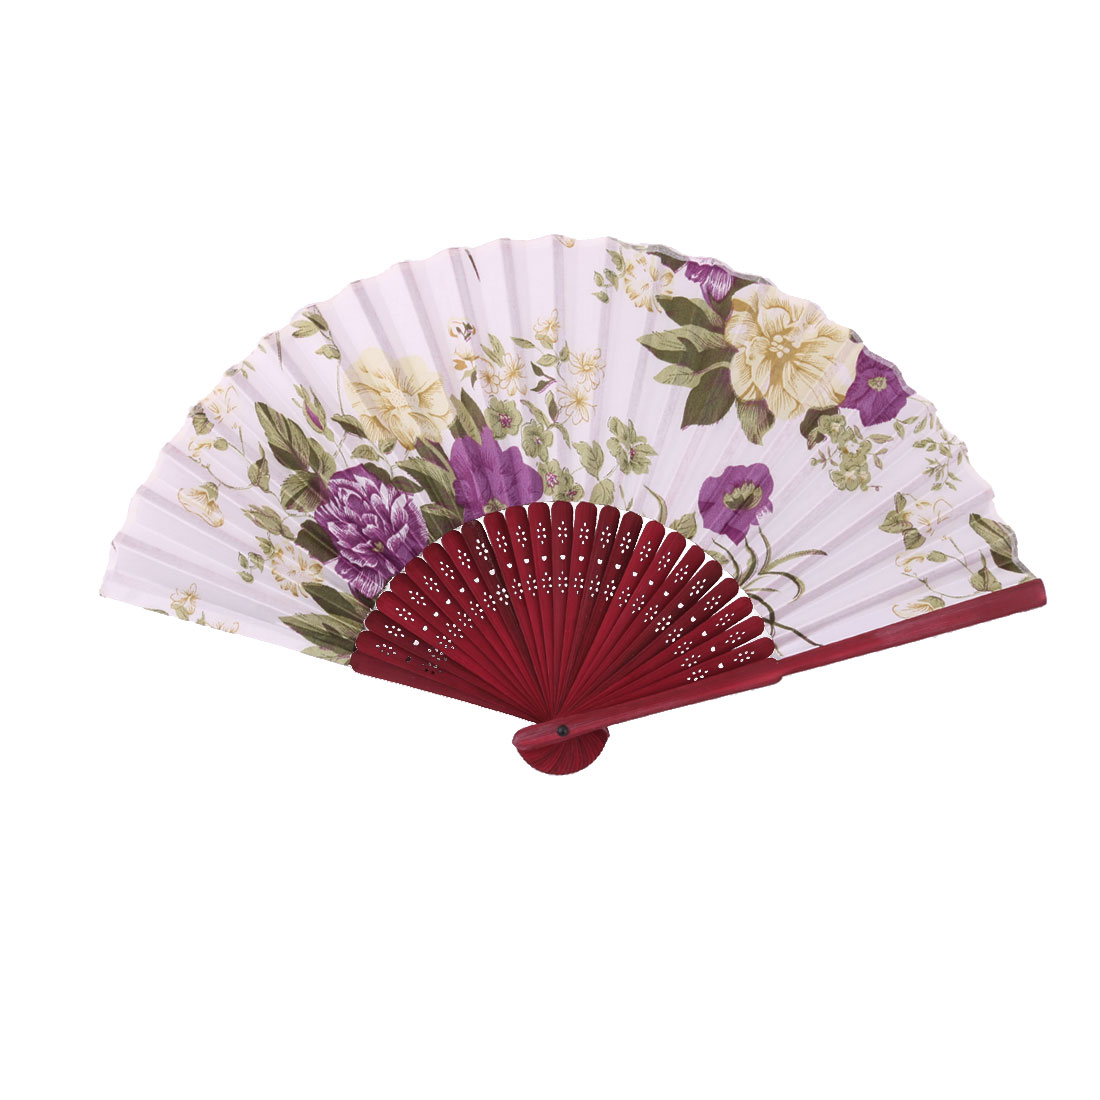 Home Party Bamboo Frame Flower Pattern Handmade Craft Folding Hand Fan Colorful